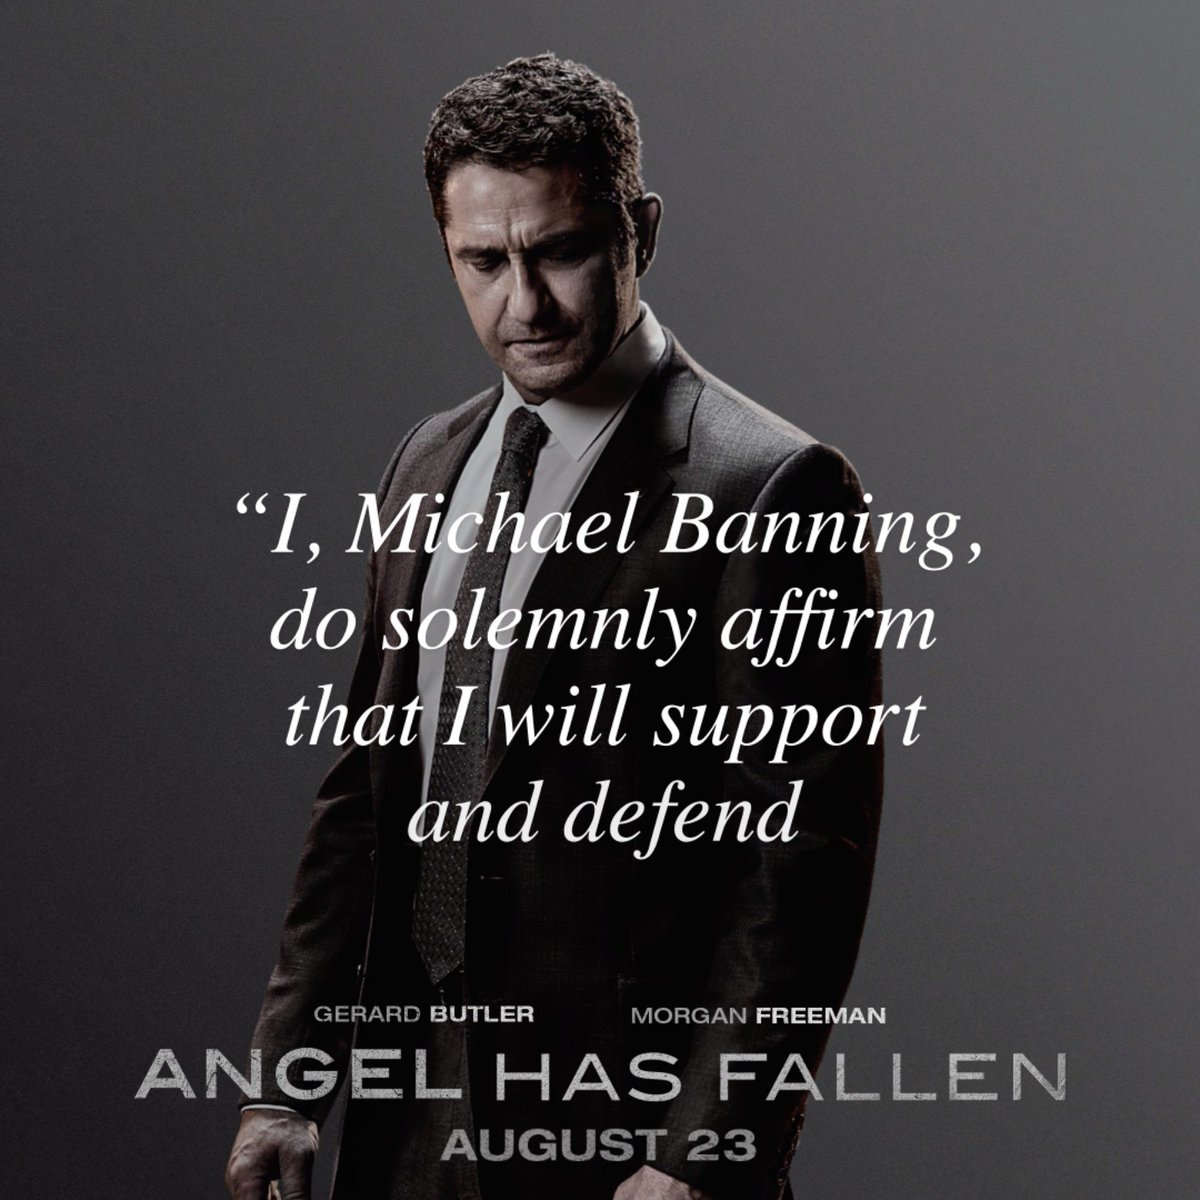 Your summer isn't complete until you experience #AngelHasFallen with Gerard Butler & Morgan Freeman. Reserve your seat: tickets.angelhasfallen.movie